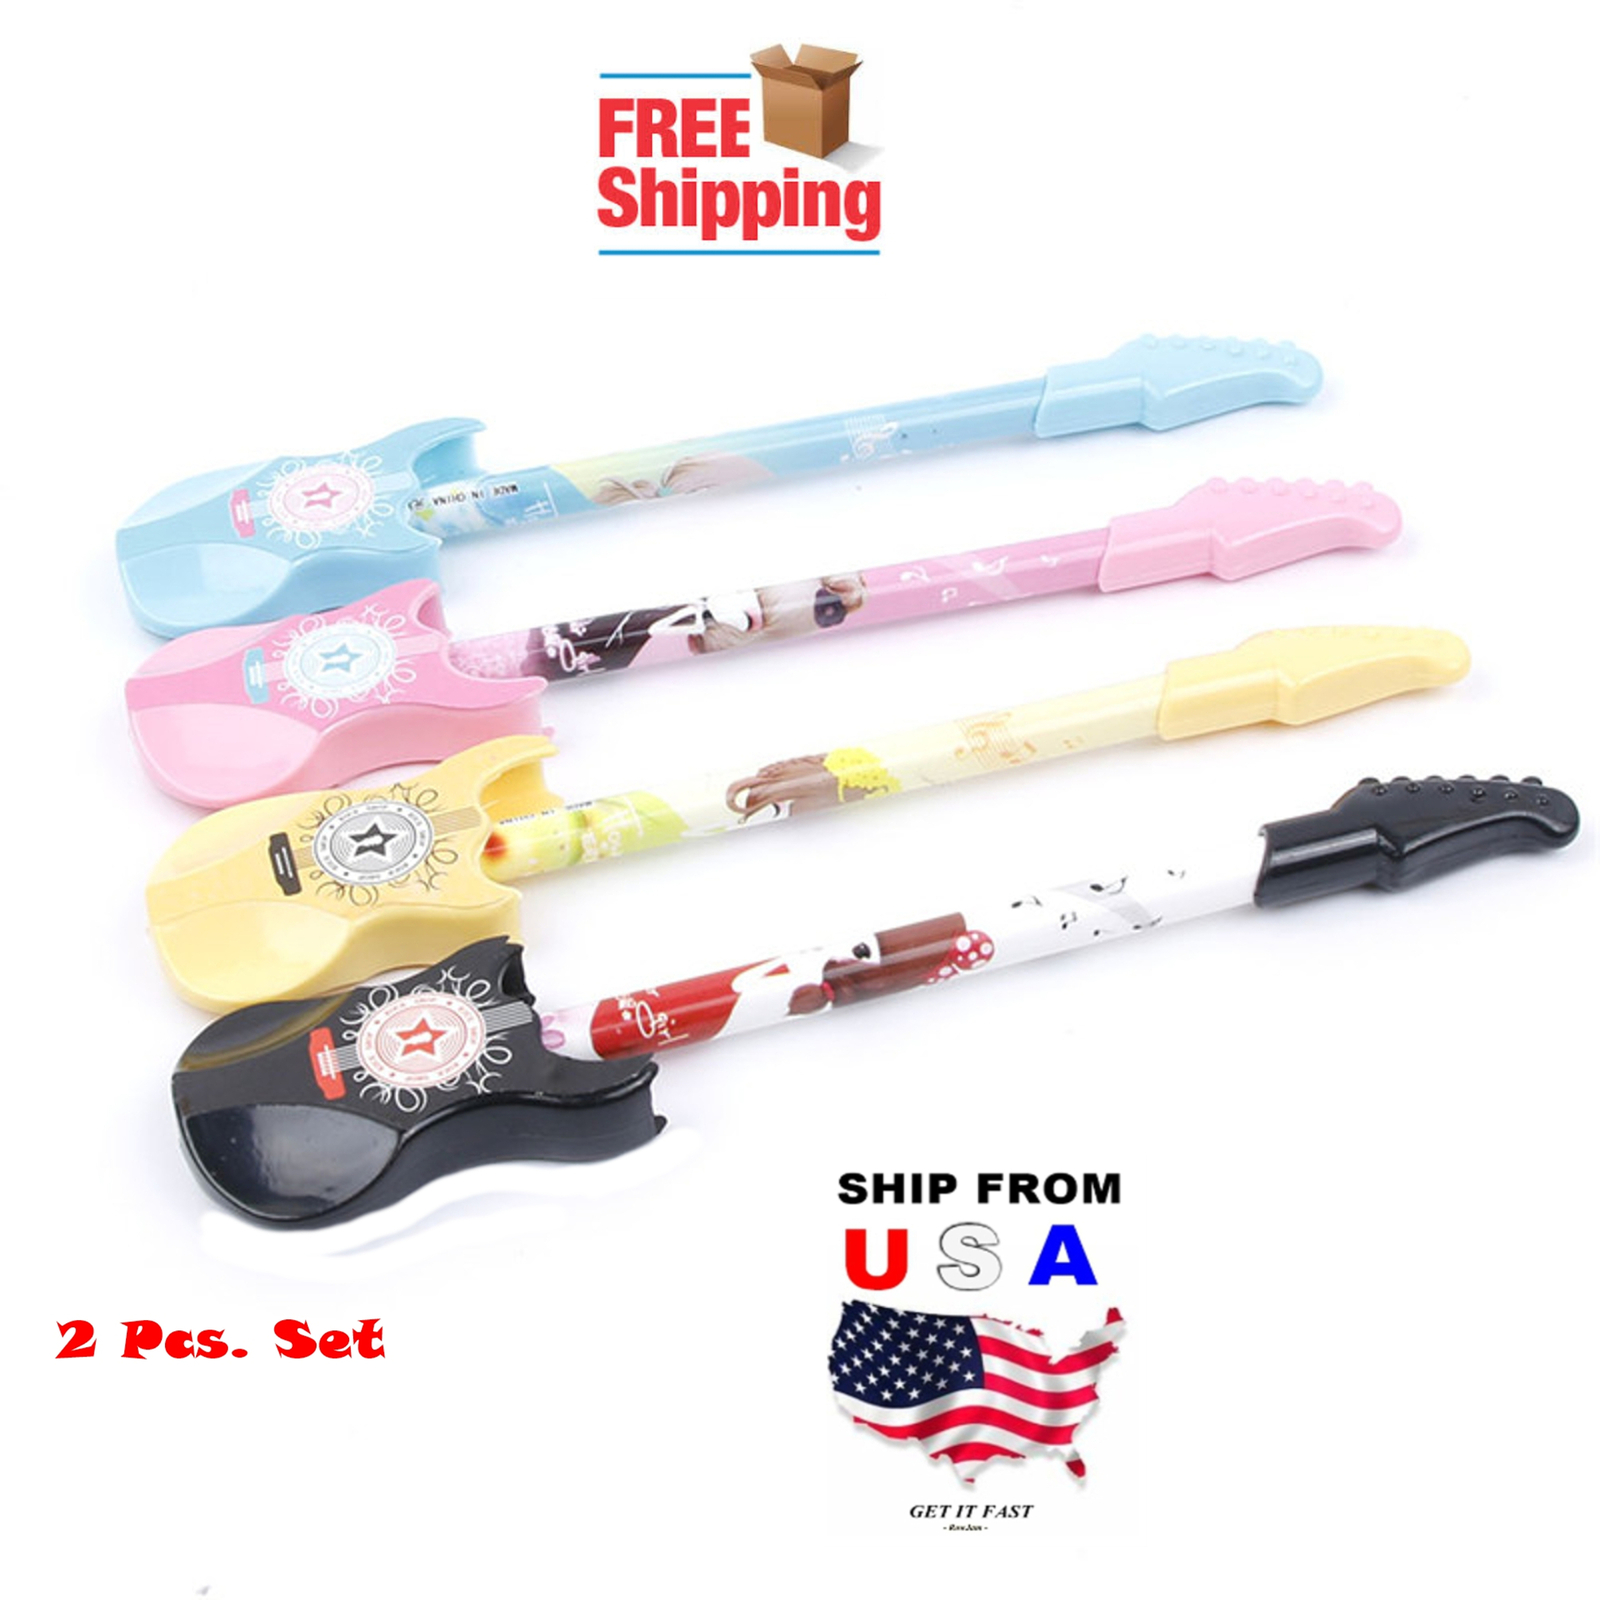 2 Pcs. Guitar Musical Ballpoint Pen + 2 Refill Cartridges School Supply Home